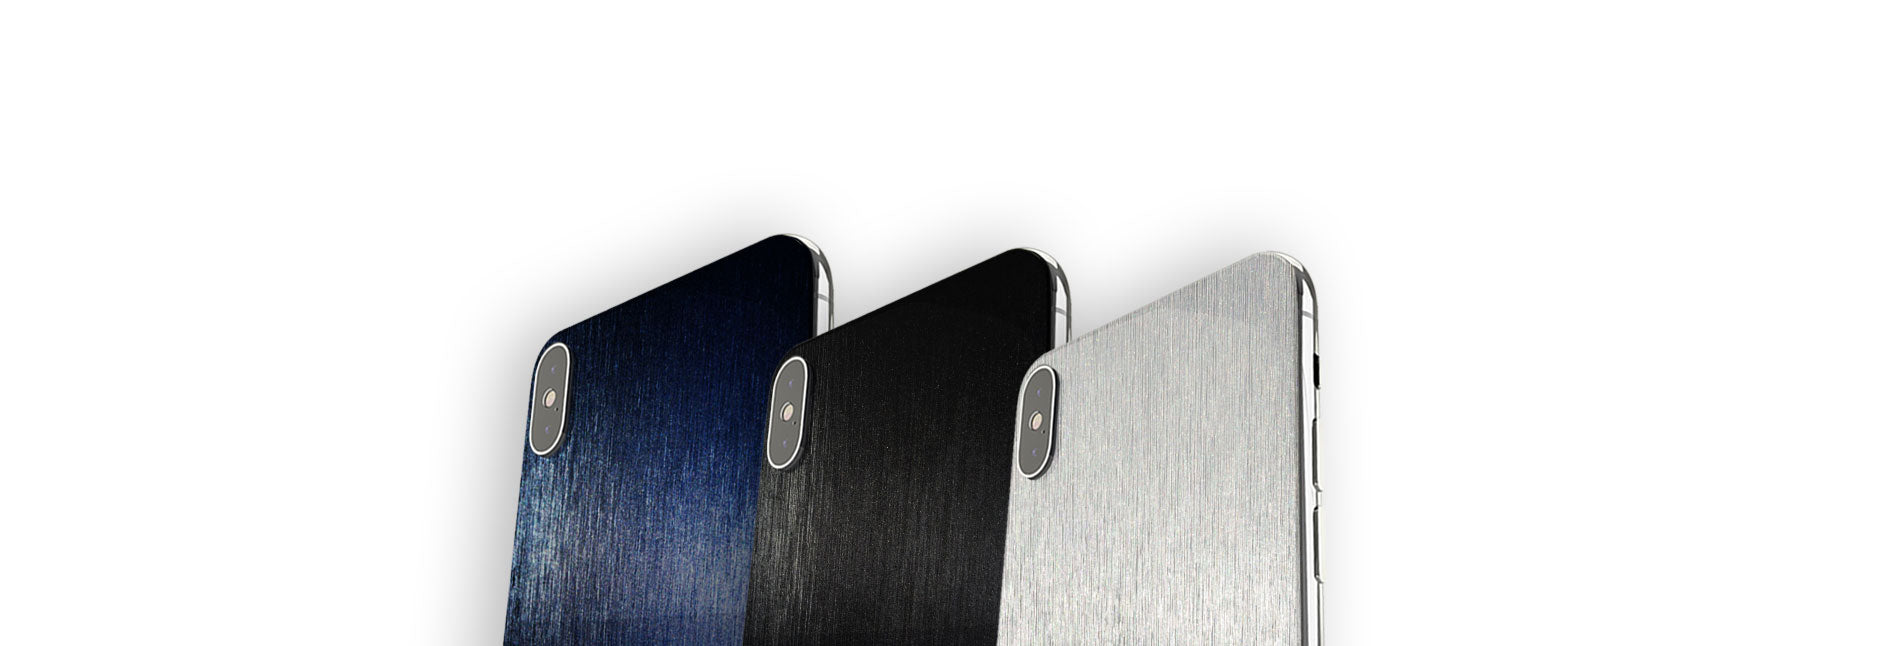 Brushed Aluminum Skins